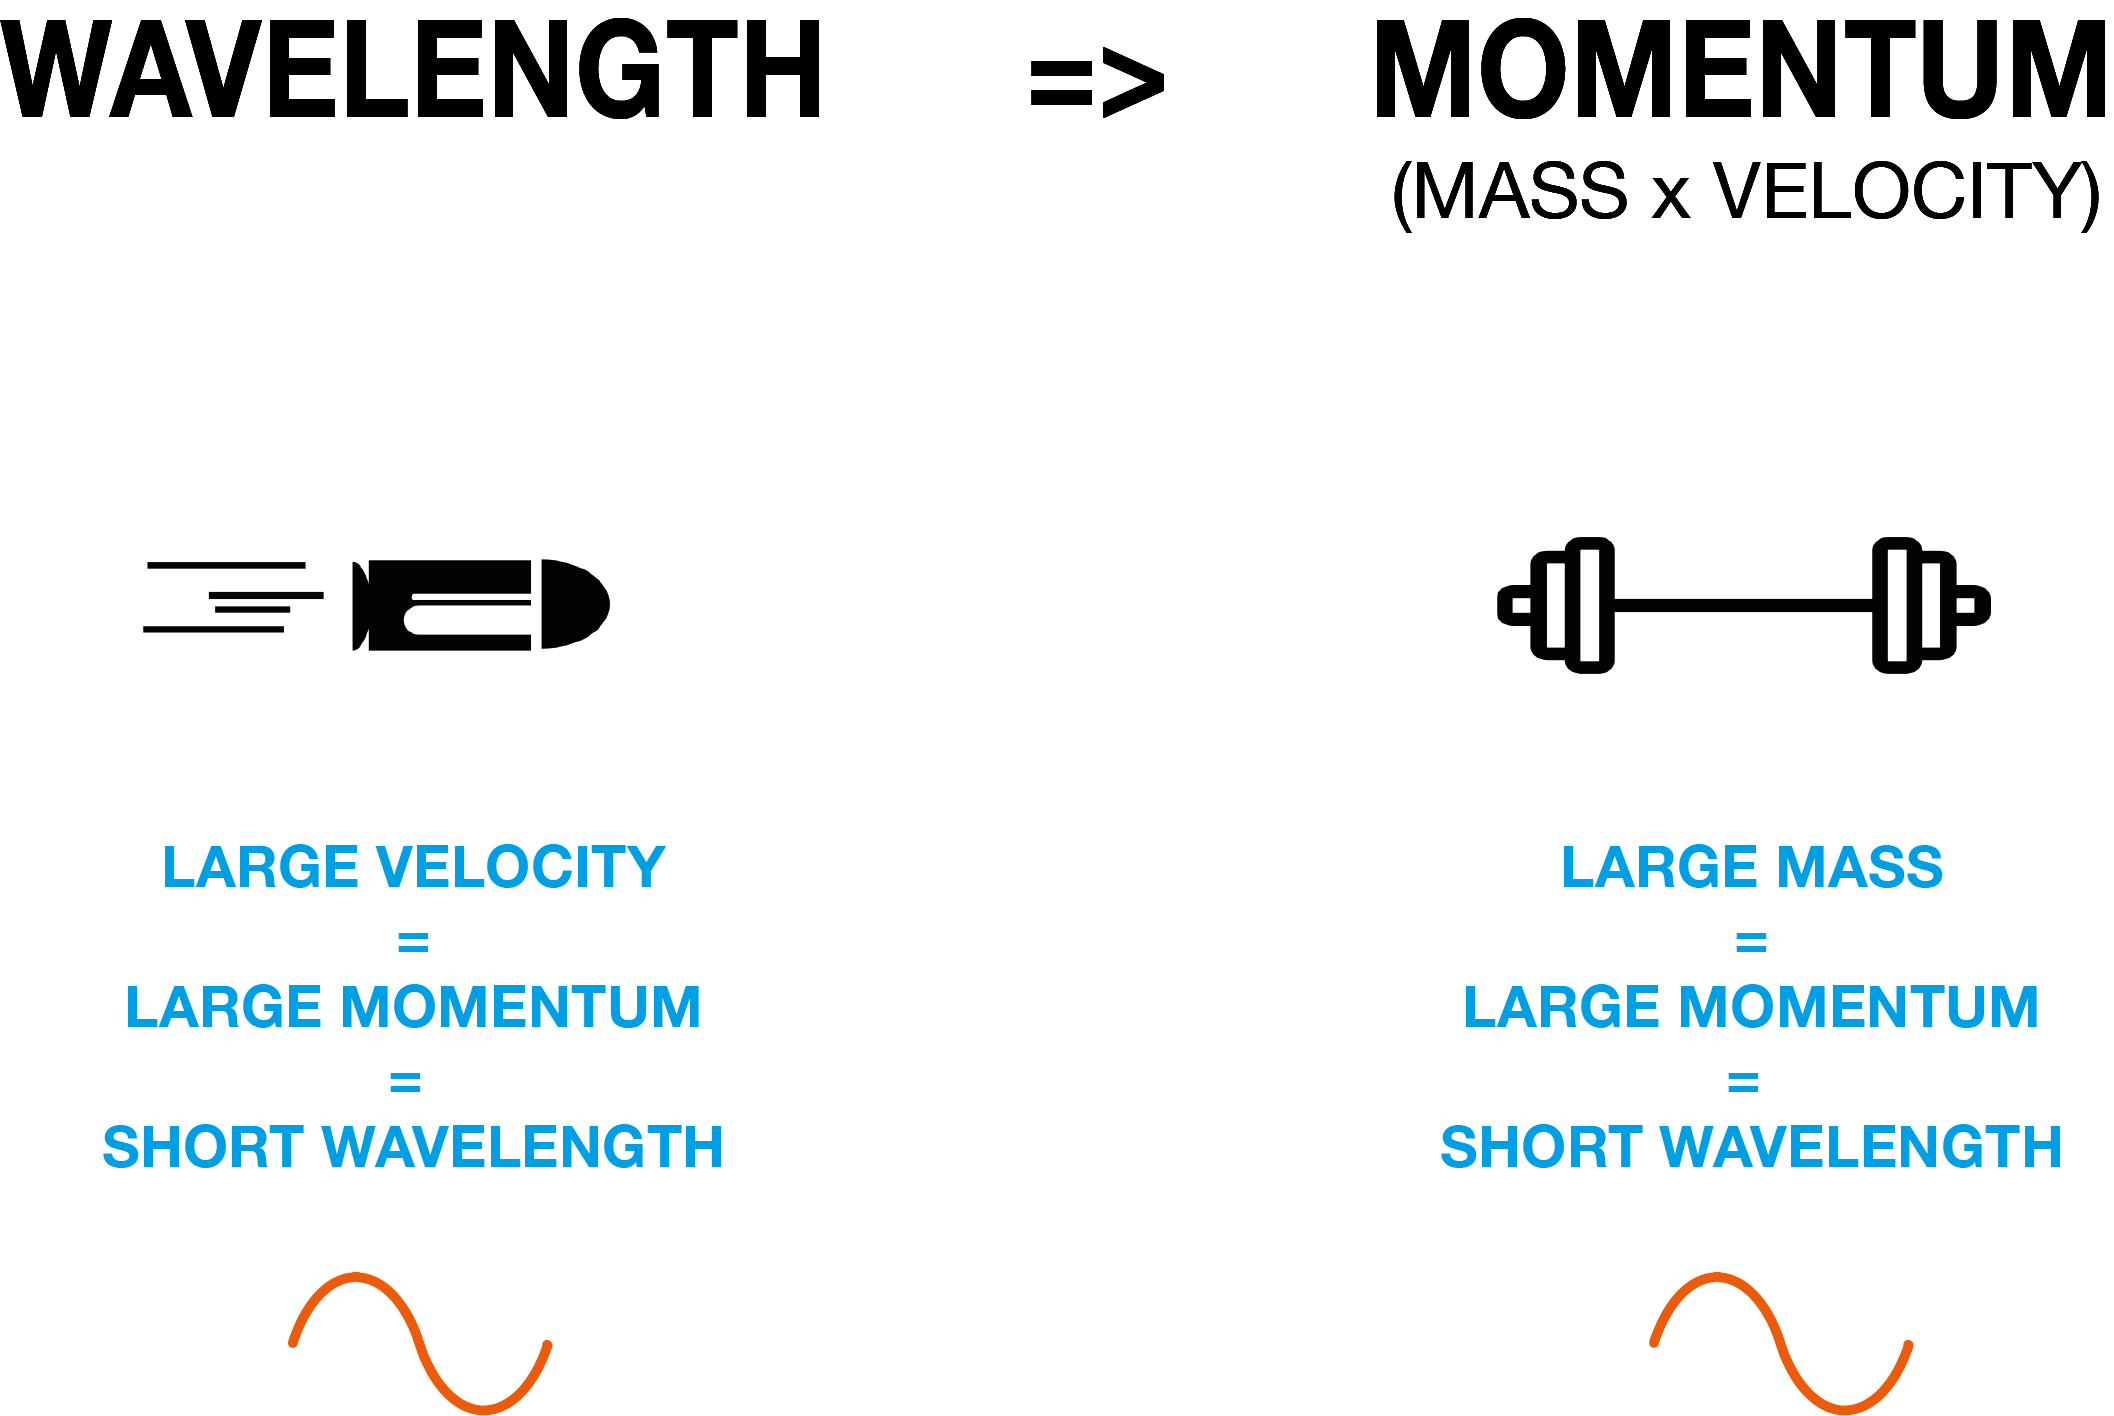 Infographic showing wavelength = momentum and giving examples of a heavy and fast moving objects having high momentum thus a short wave length